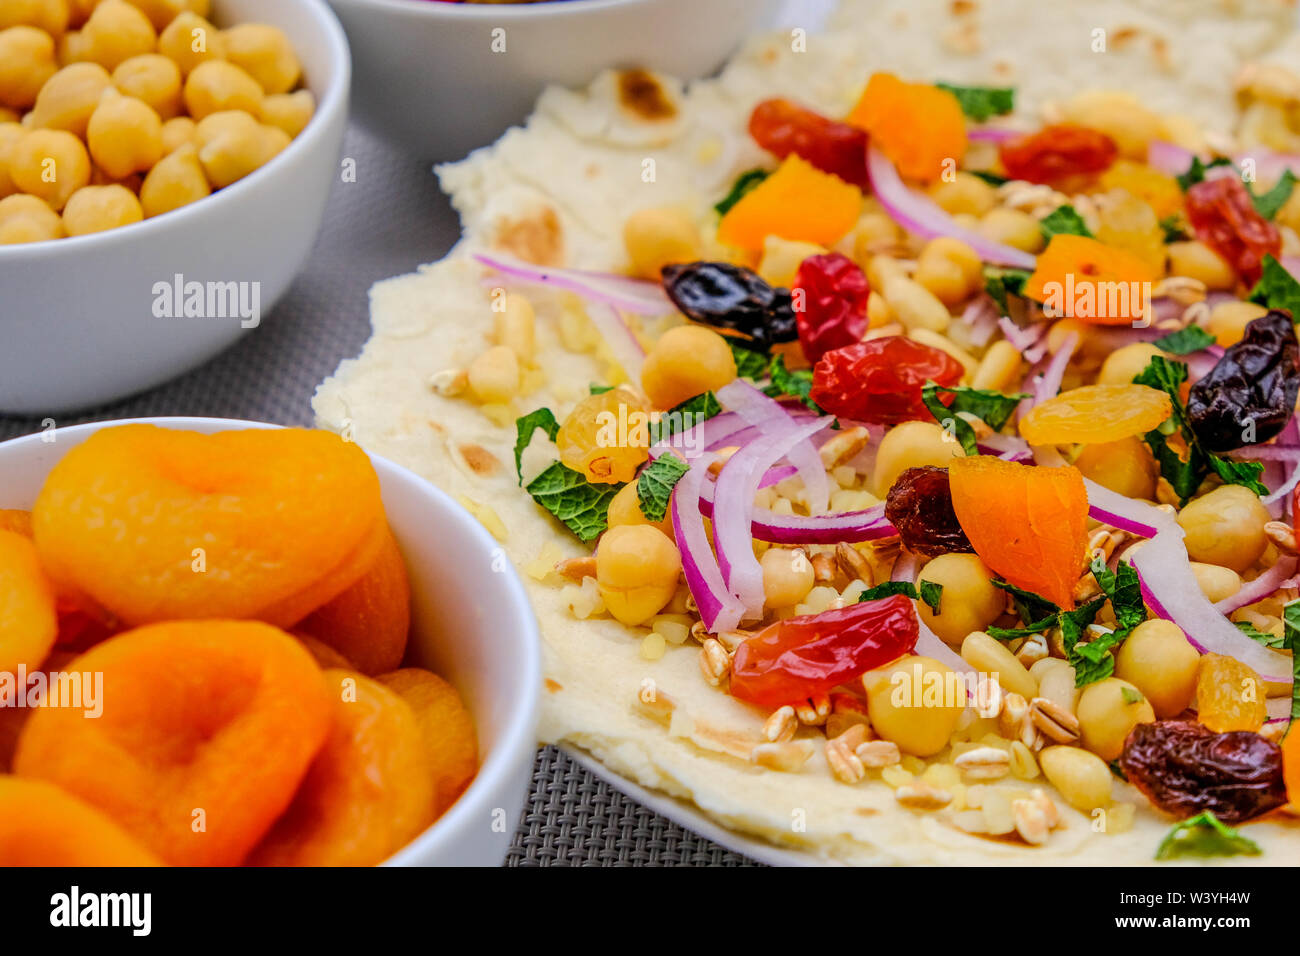 Healthy Pizza Base With Fruit and Nuts, apricots, sultanas, Raisins, Pine Nuts, red Onion and Chickpeas - Stock Image